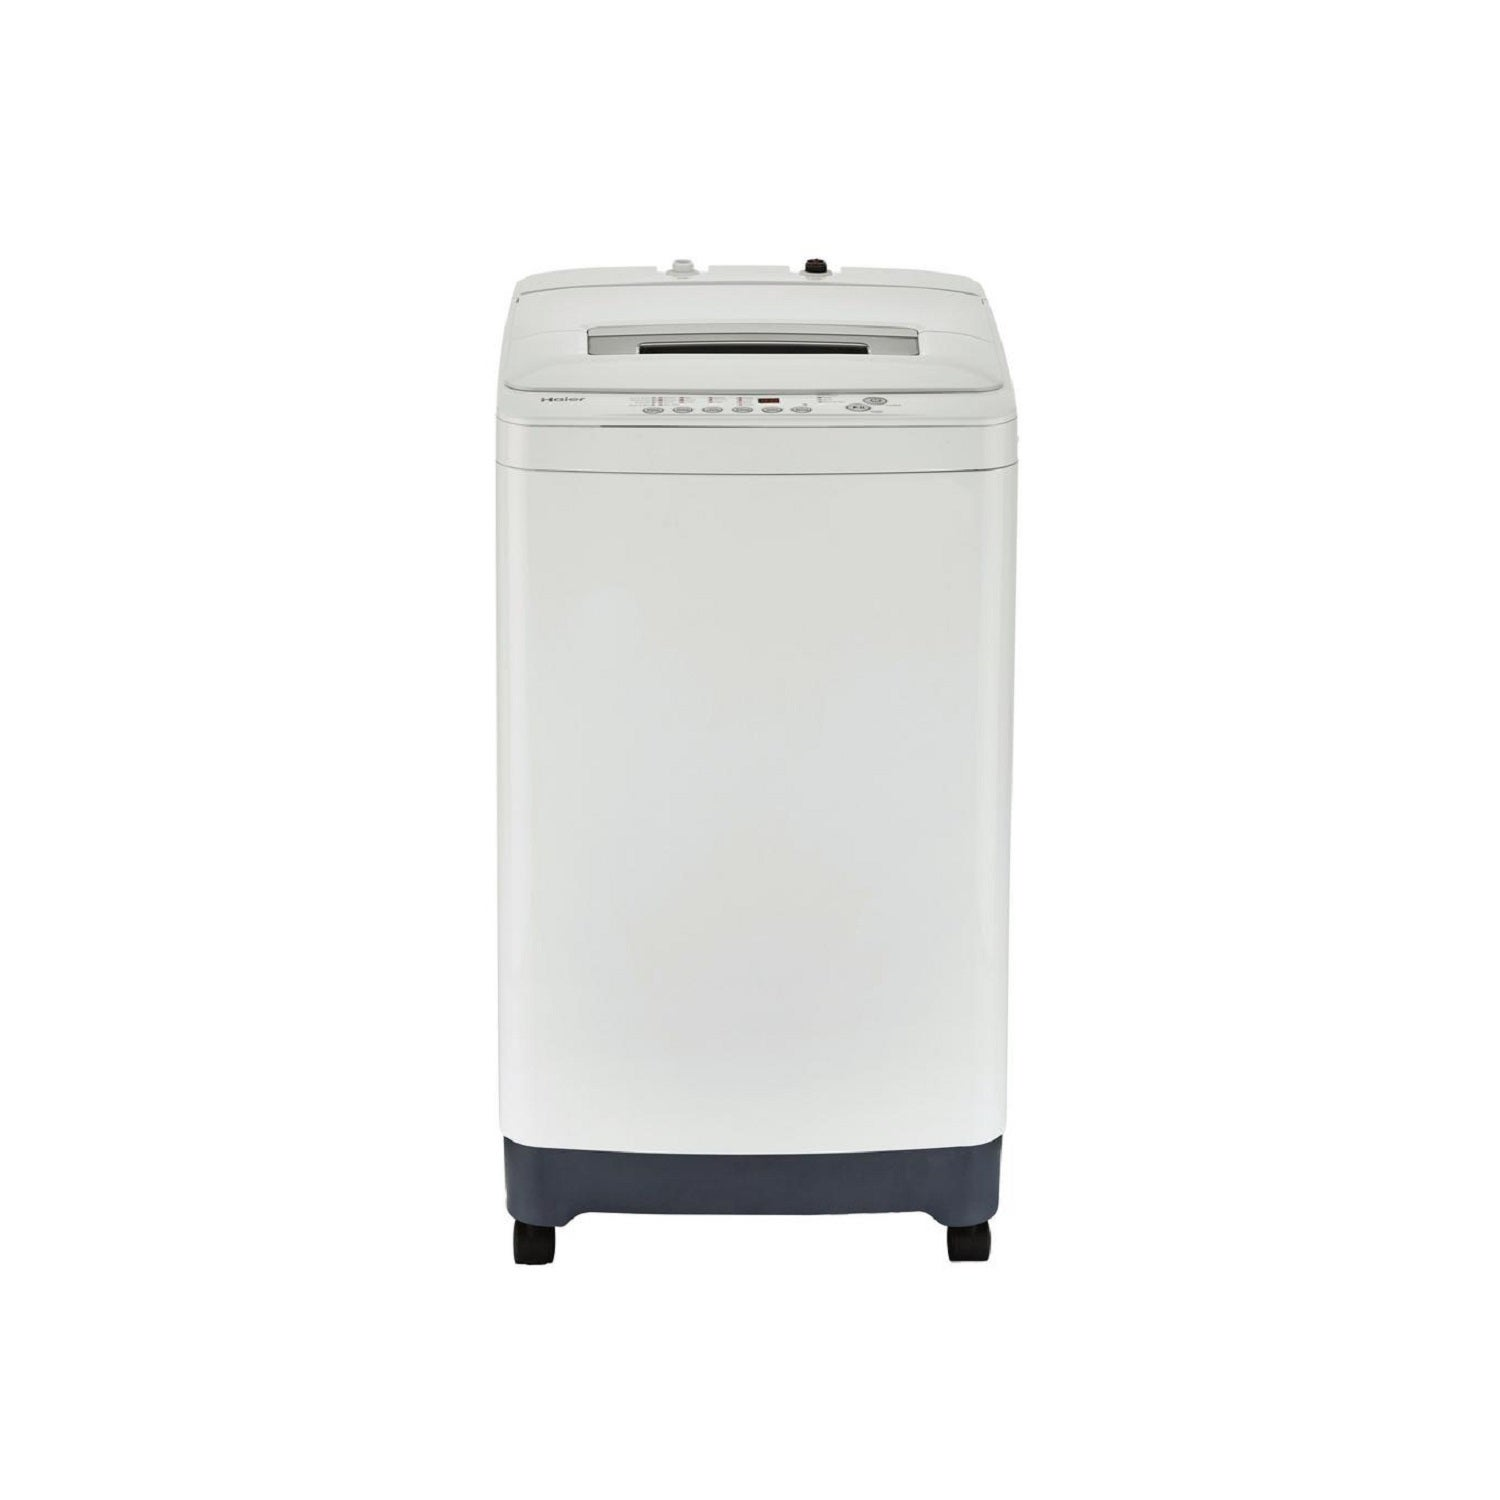 Haier 2.1 Cu. Ft. Portable Compact Washer, Silver stainle...